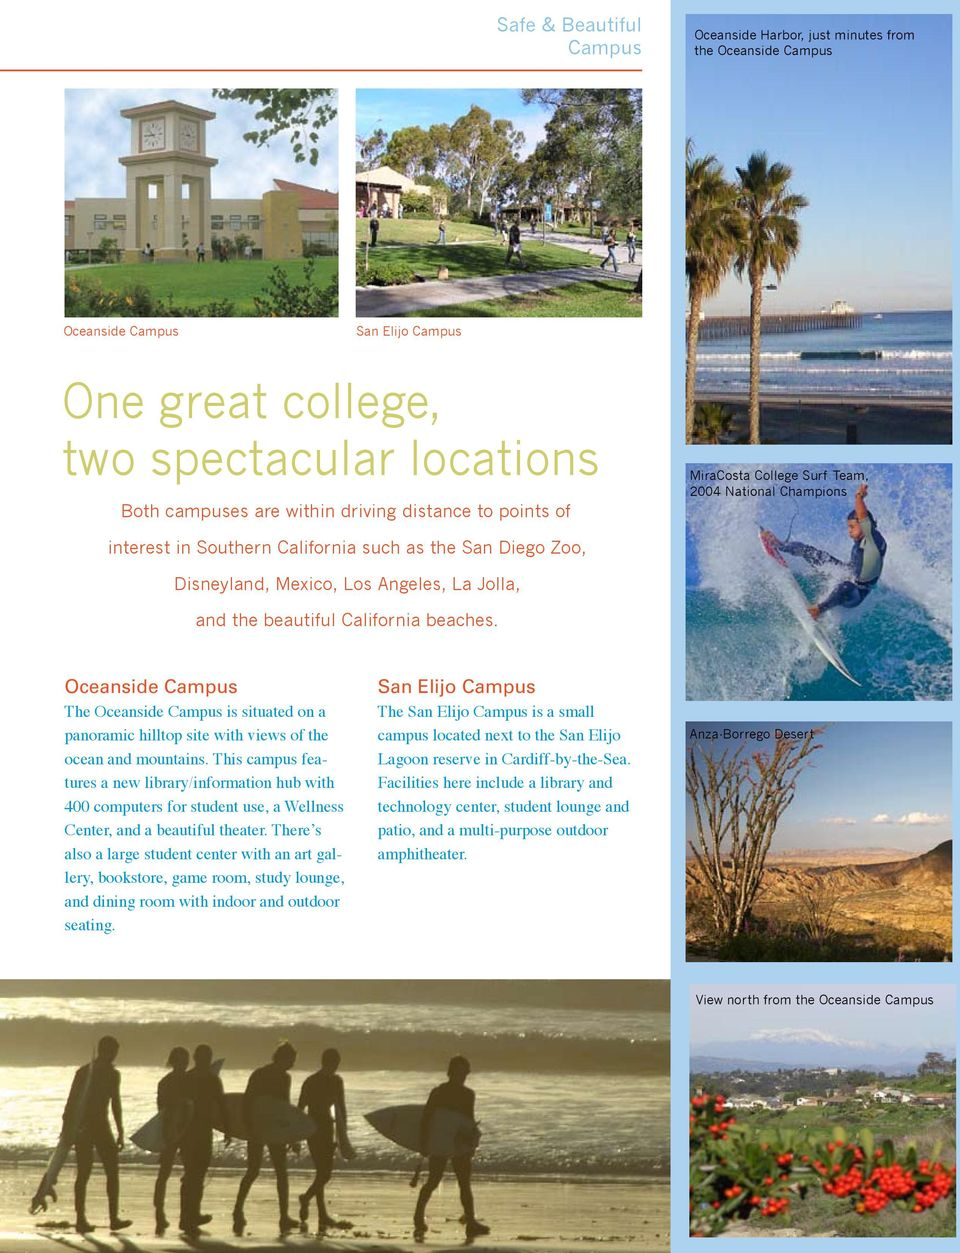 California beaches. Oceanside Campus The Oceanside Campus is situated on a panoramic hilltop site with views of the ocean and mountains.